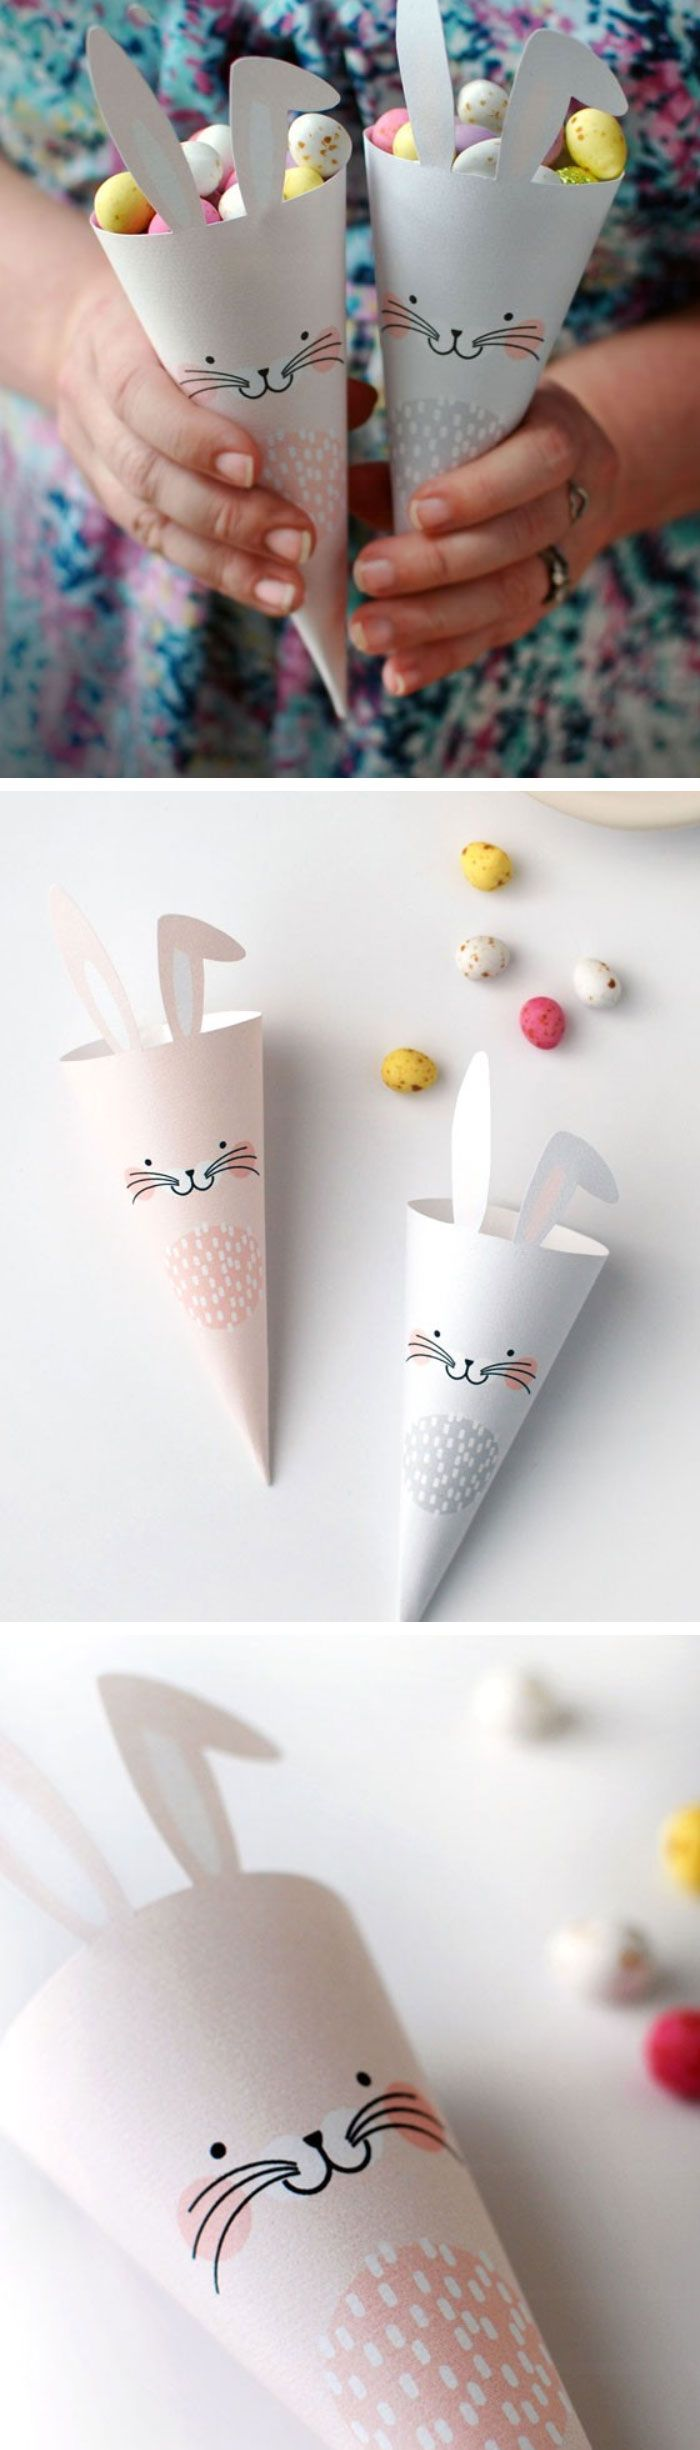 Best 25 easter bunny pics ideas on pinterest easter bunny ears from toilet roll mini baskets to easy and quick easter basket pudding cups heres some really awesome budget friendly ways to wrap up all those lovely negle Gallery